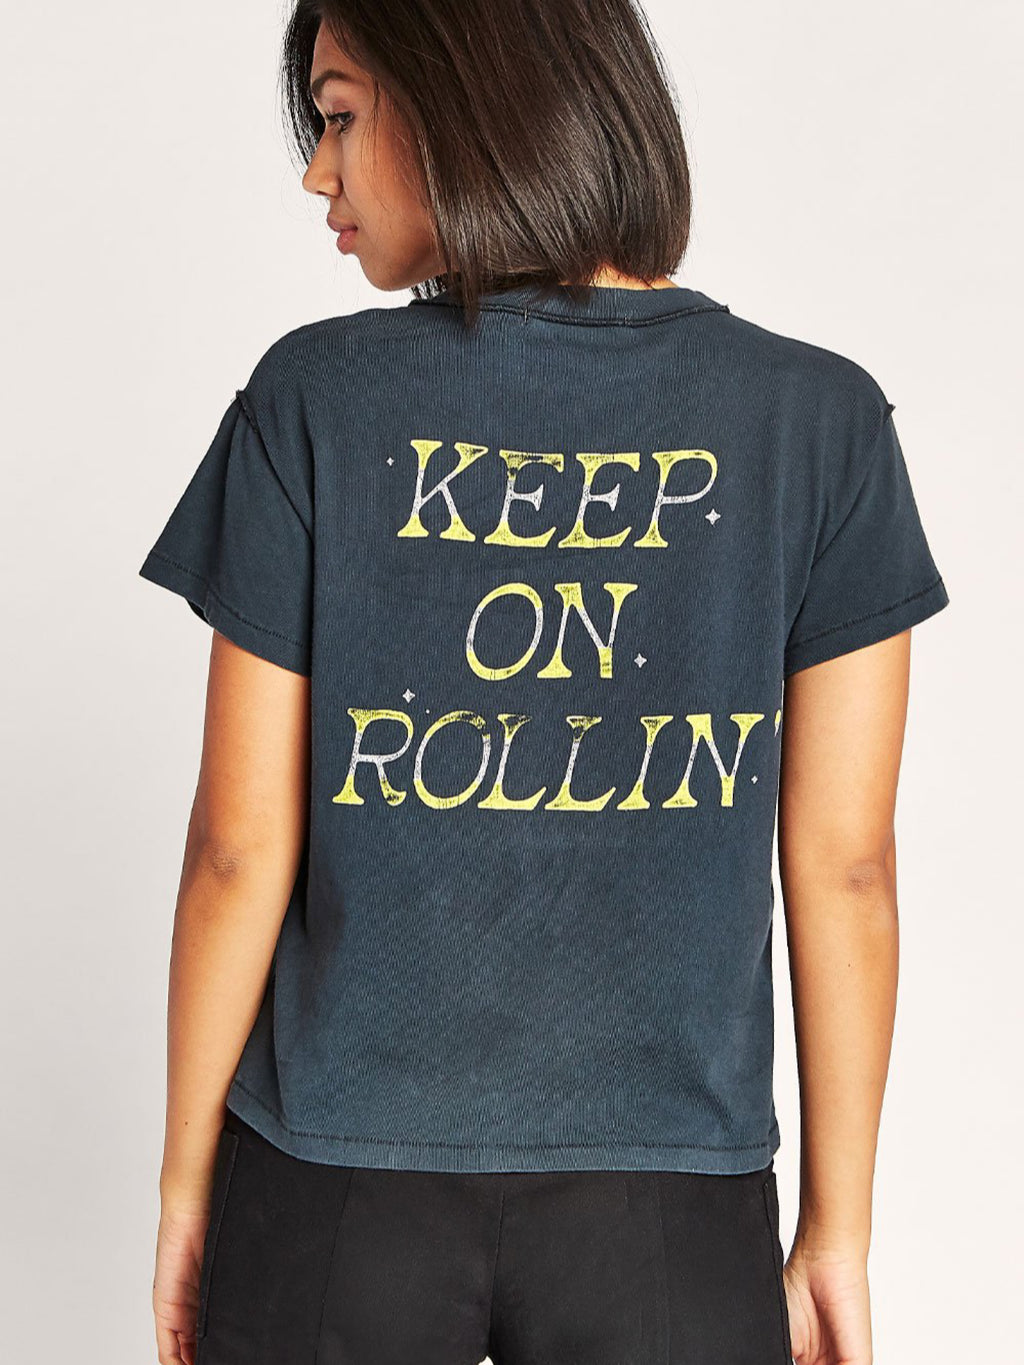 Keep On Rollin' Girlfriend Tee